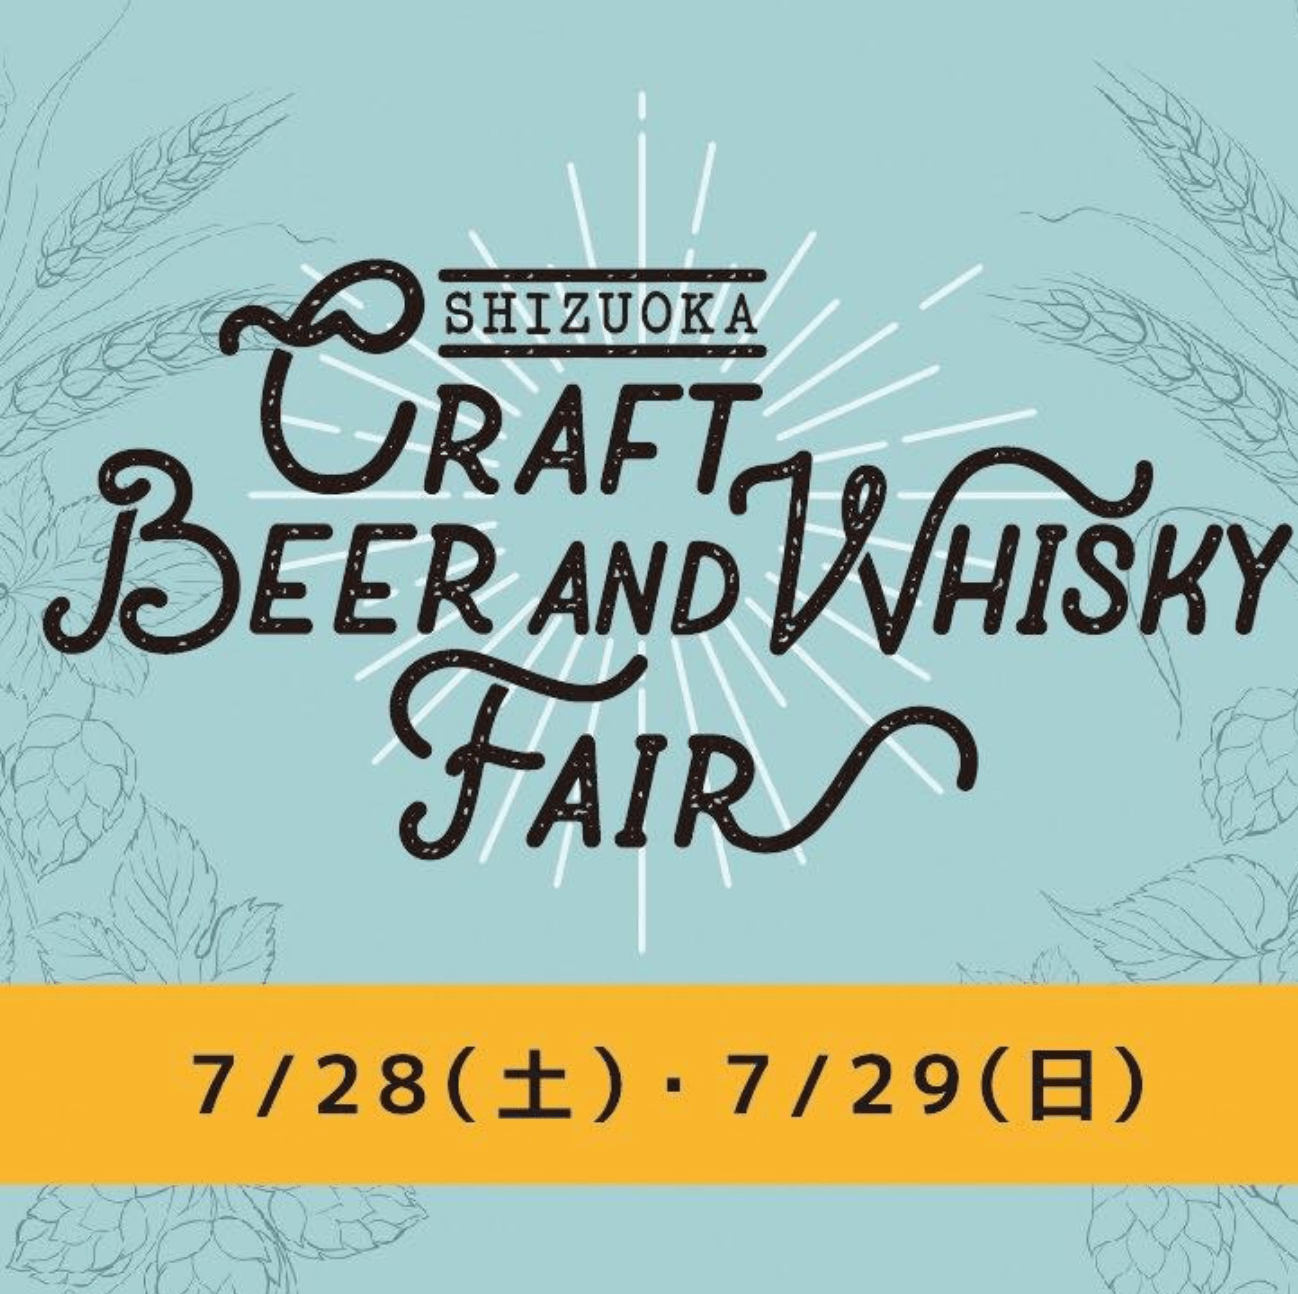 Shizuoka Craft Beer and Whisky Fair 2018